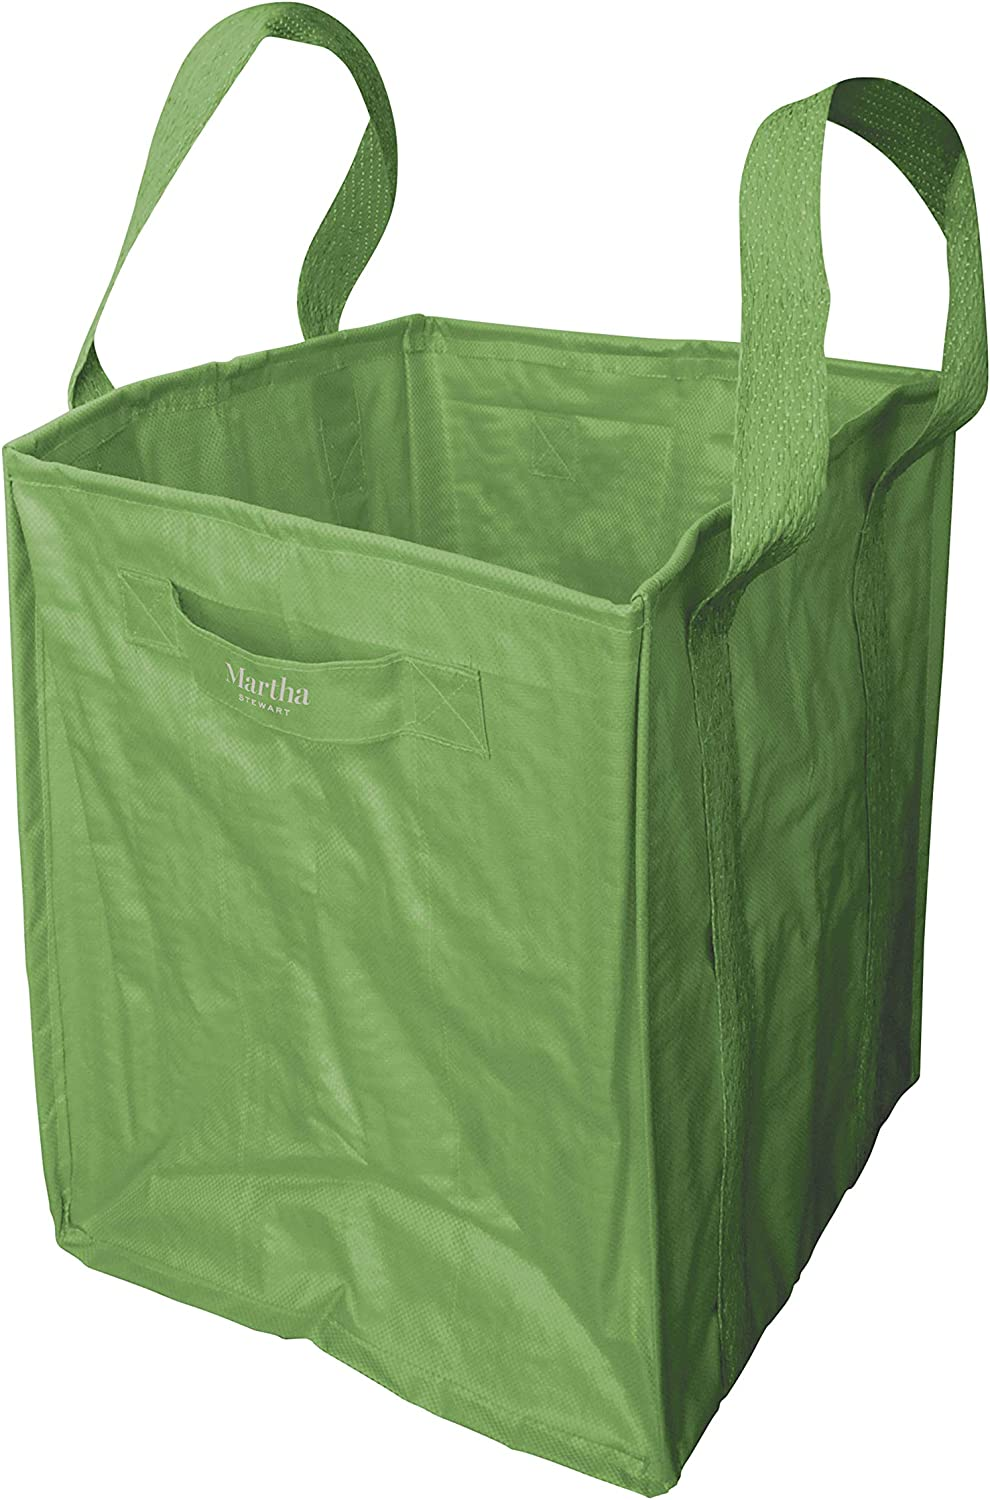 MARTHA STEWART MTS-MLB1 48-Gallon Multi-Purpose Reusable Heavy Duty Garden Tote Bag, Bay Leaf Green